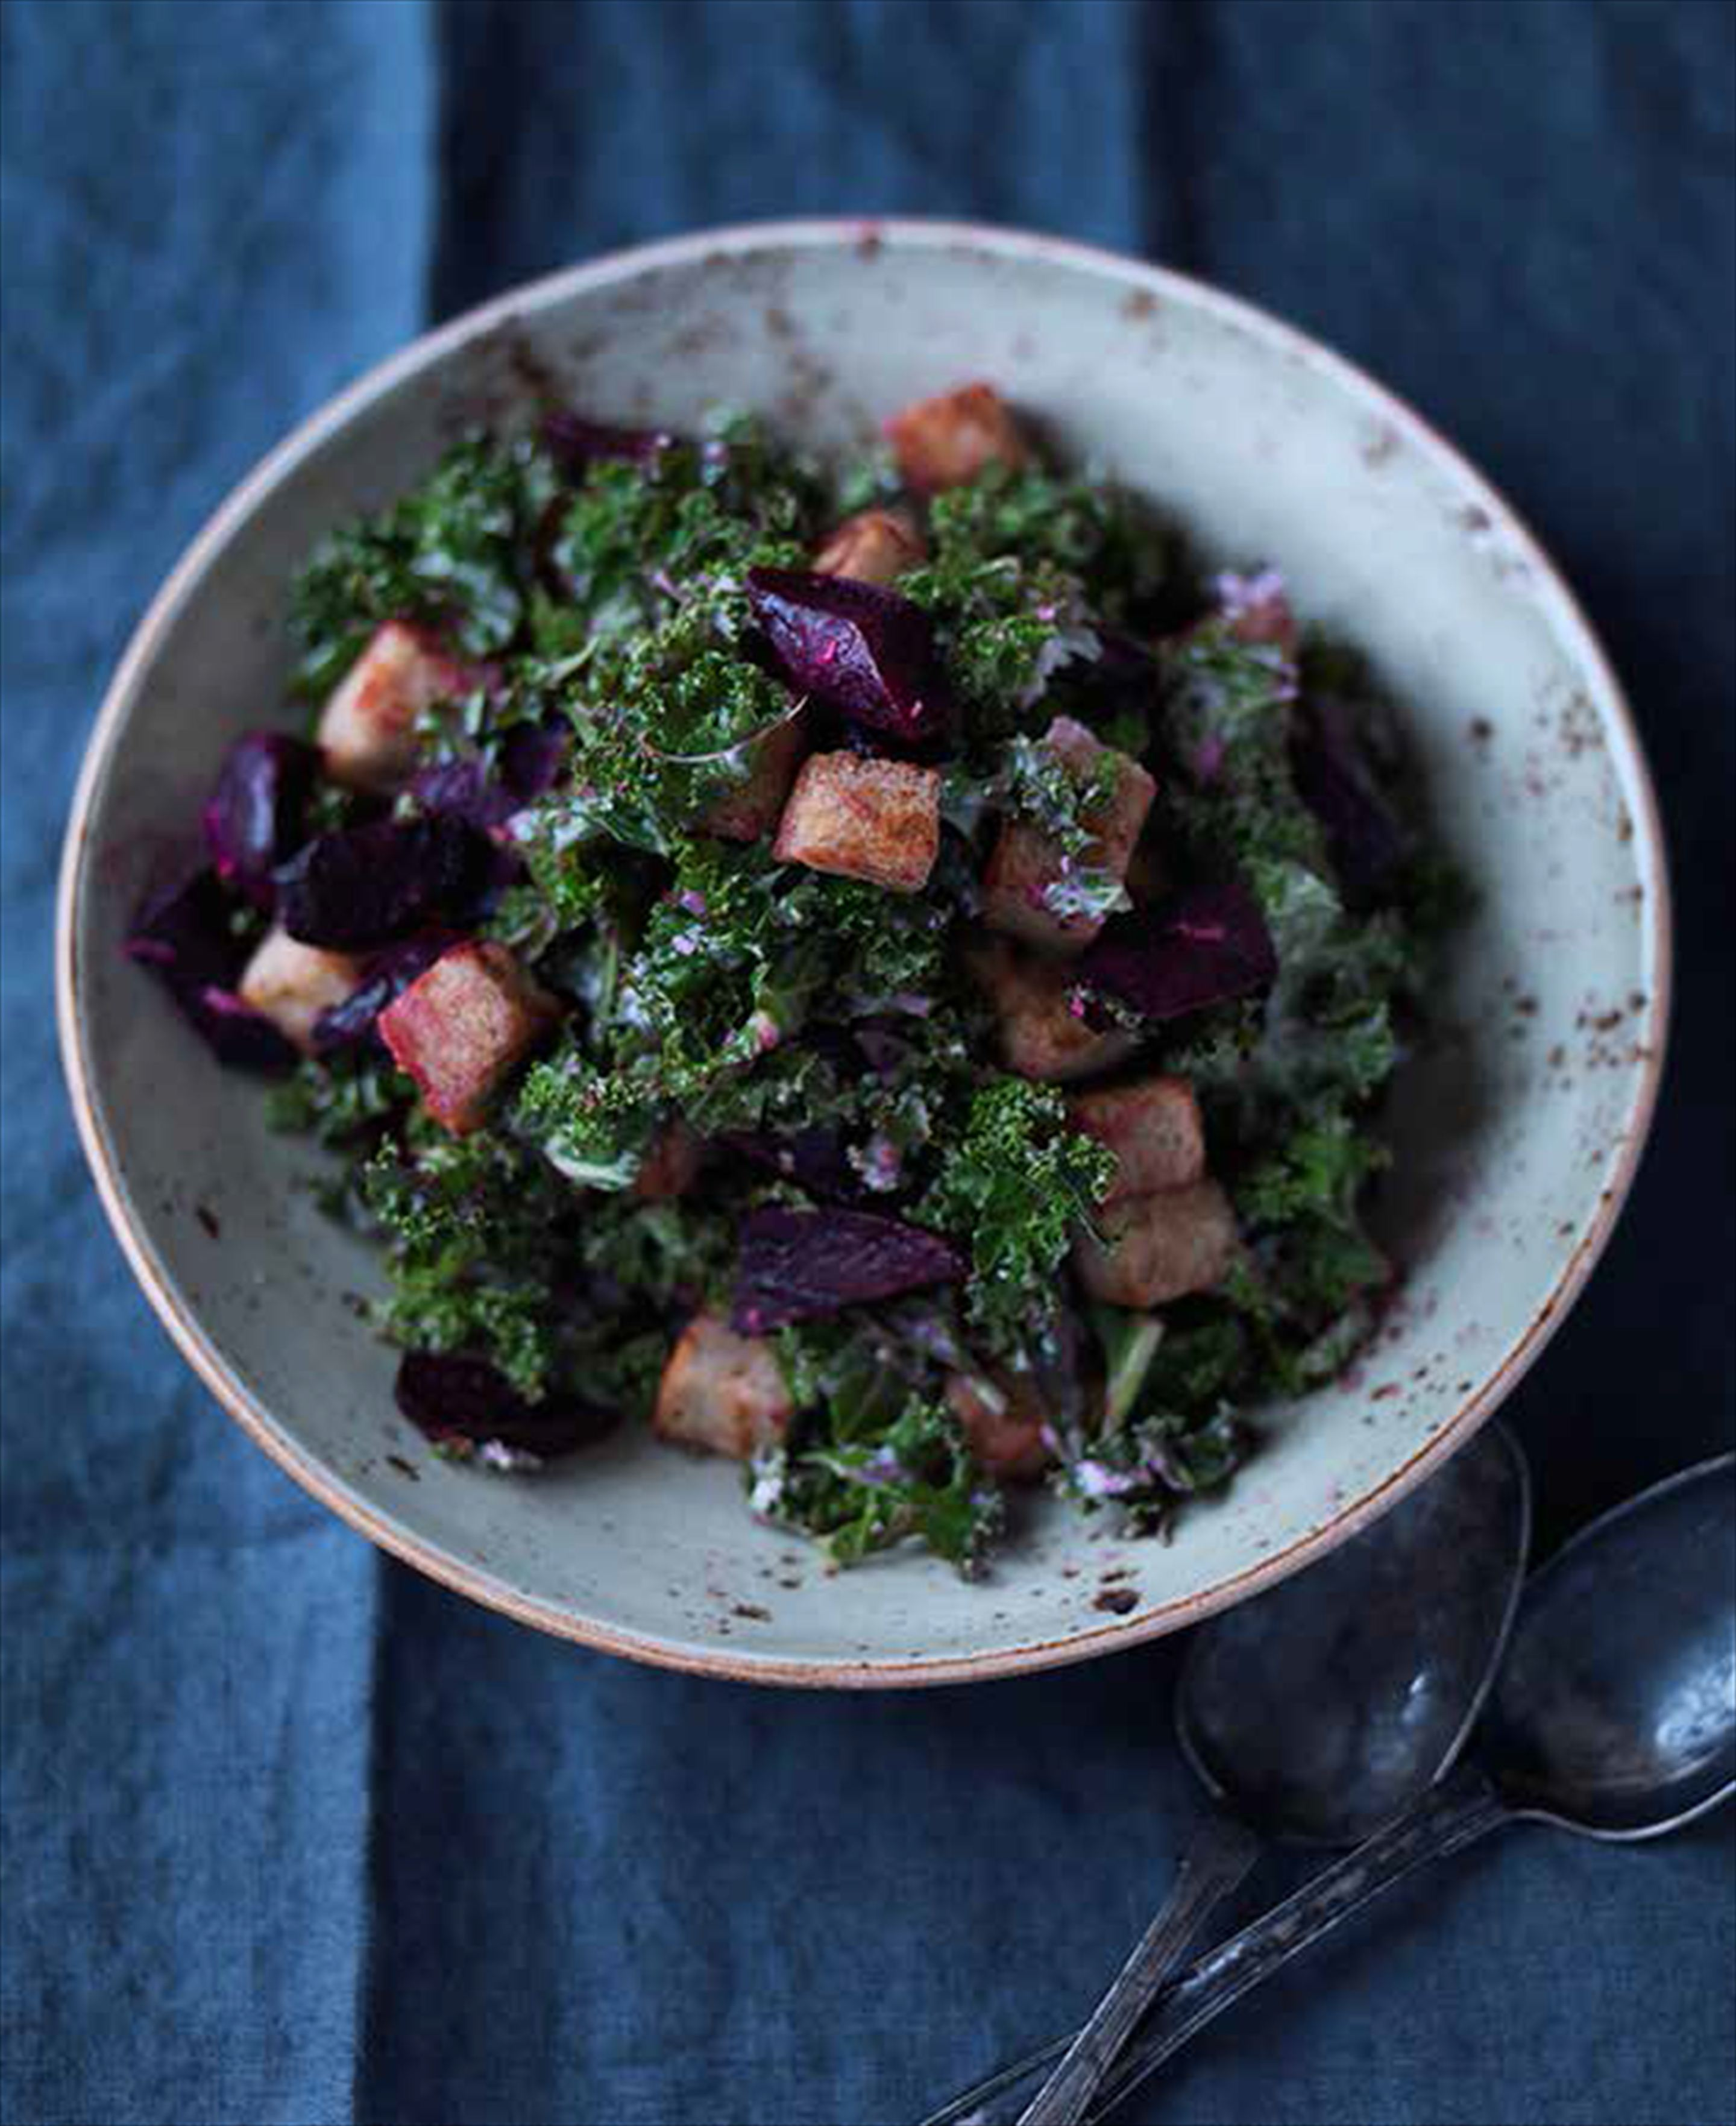 Bread salad with kale, beetroot and horseradish dressing